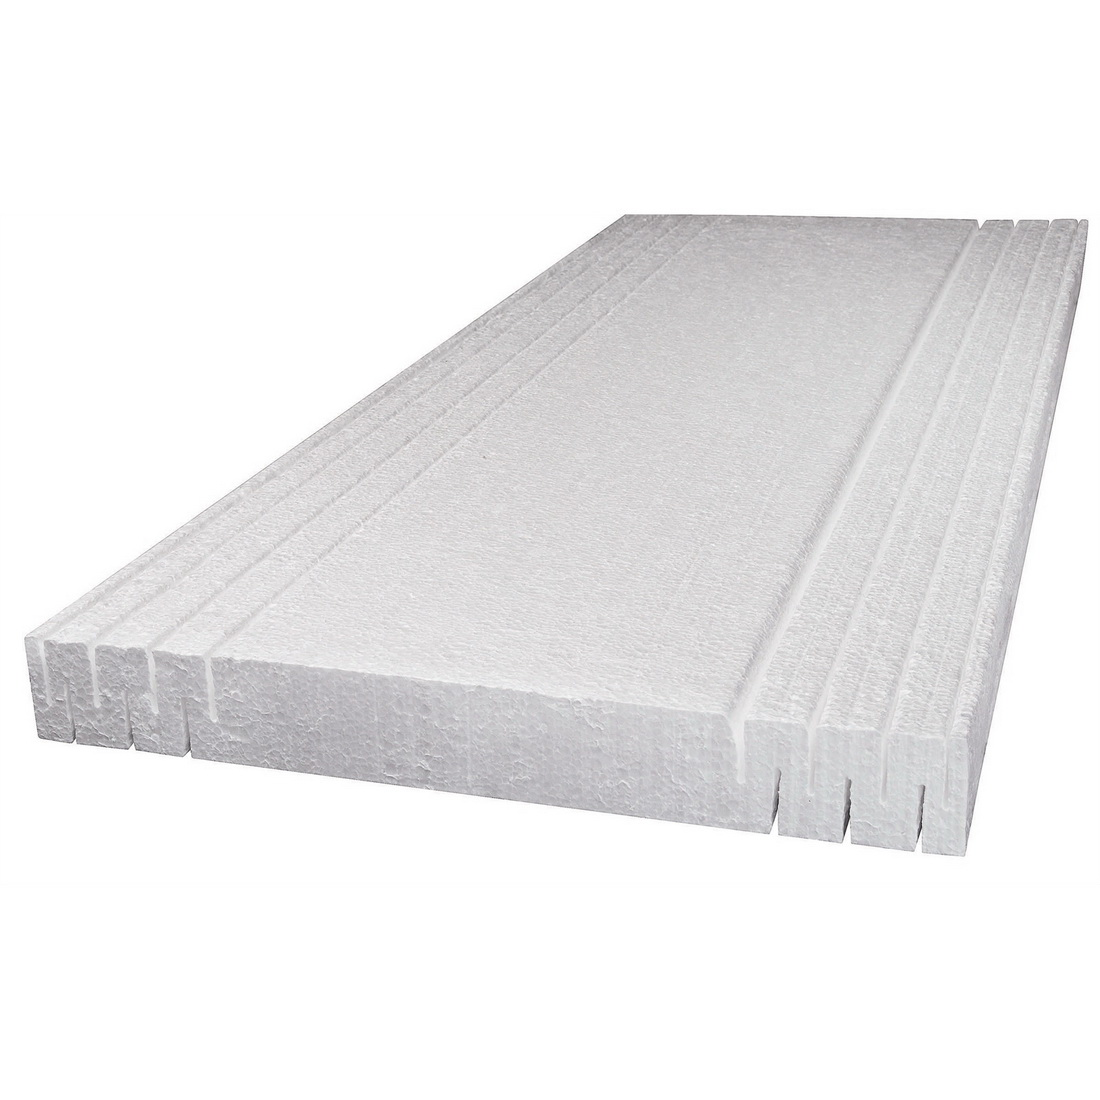 Expol Under Floor Insulation 1200 x 560 x 60 mm 6.05 sq-m White EXPOL60 560